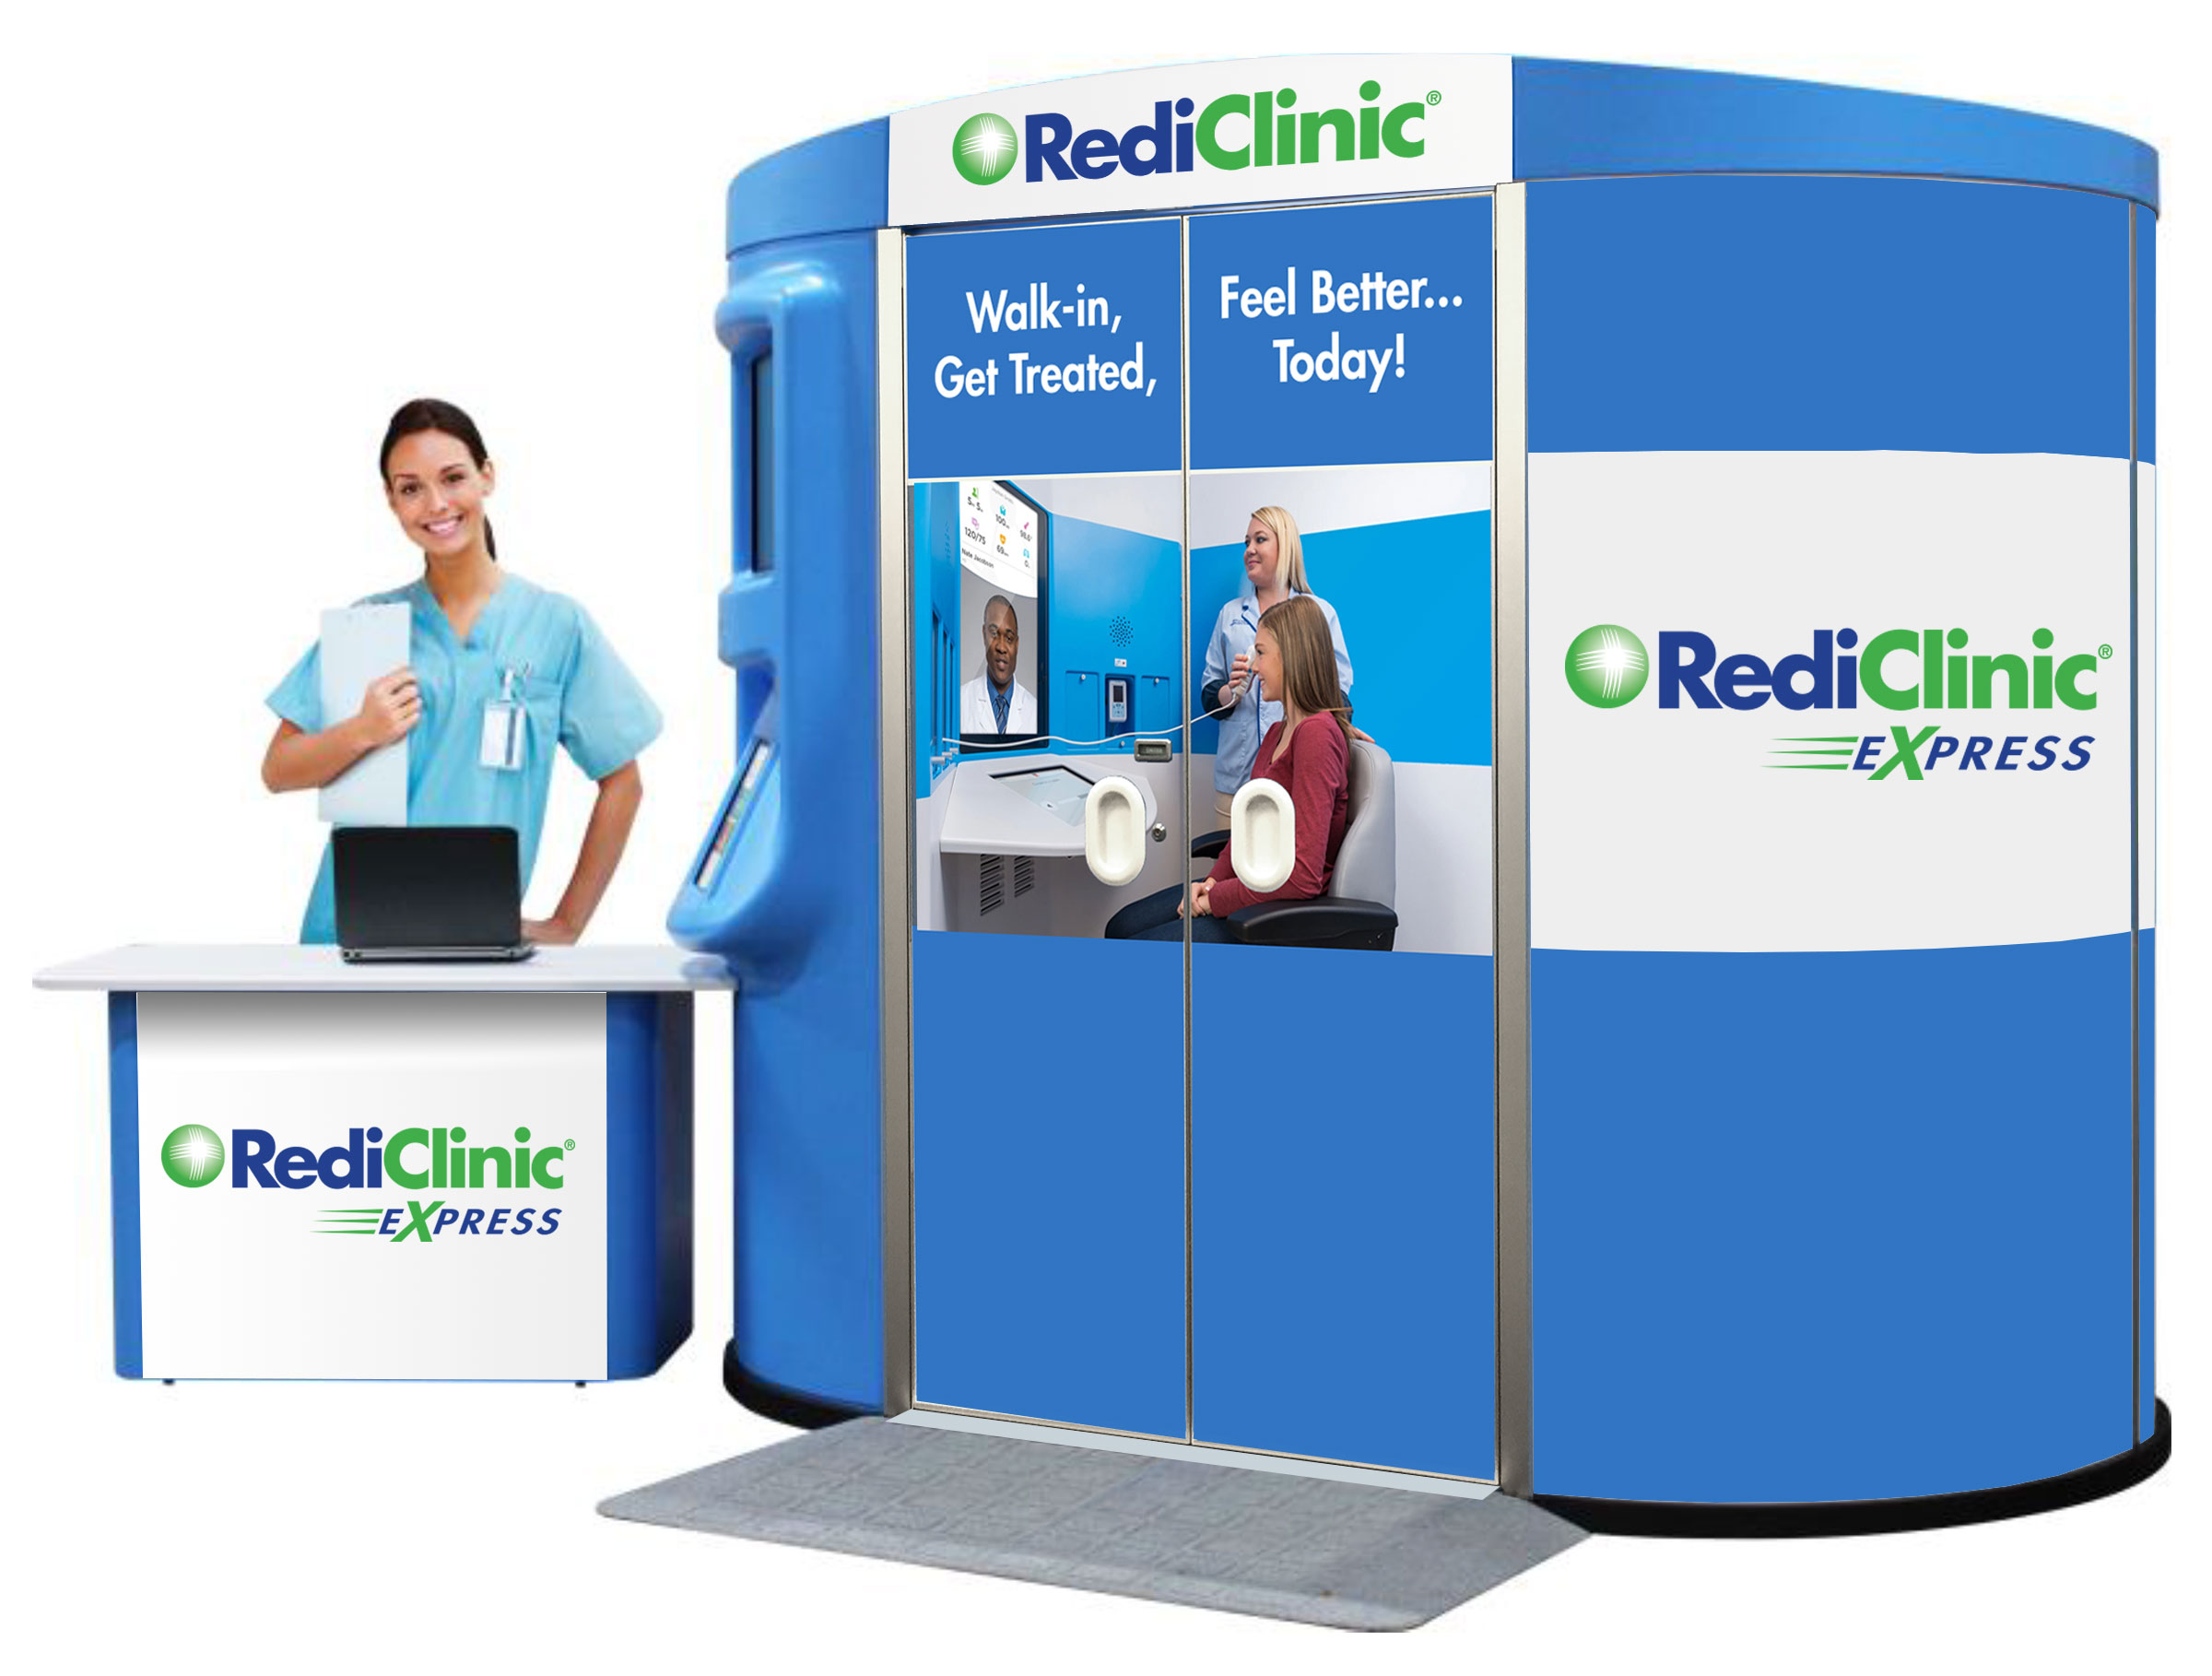 New Care on the Cusp: An update on the telemedicine market